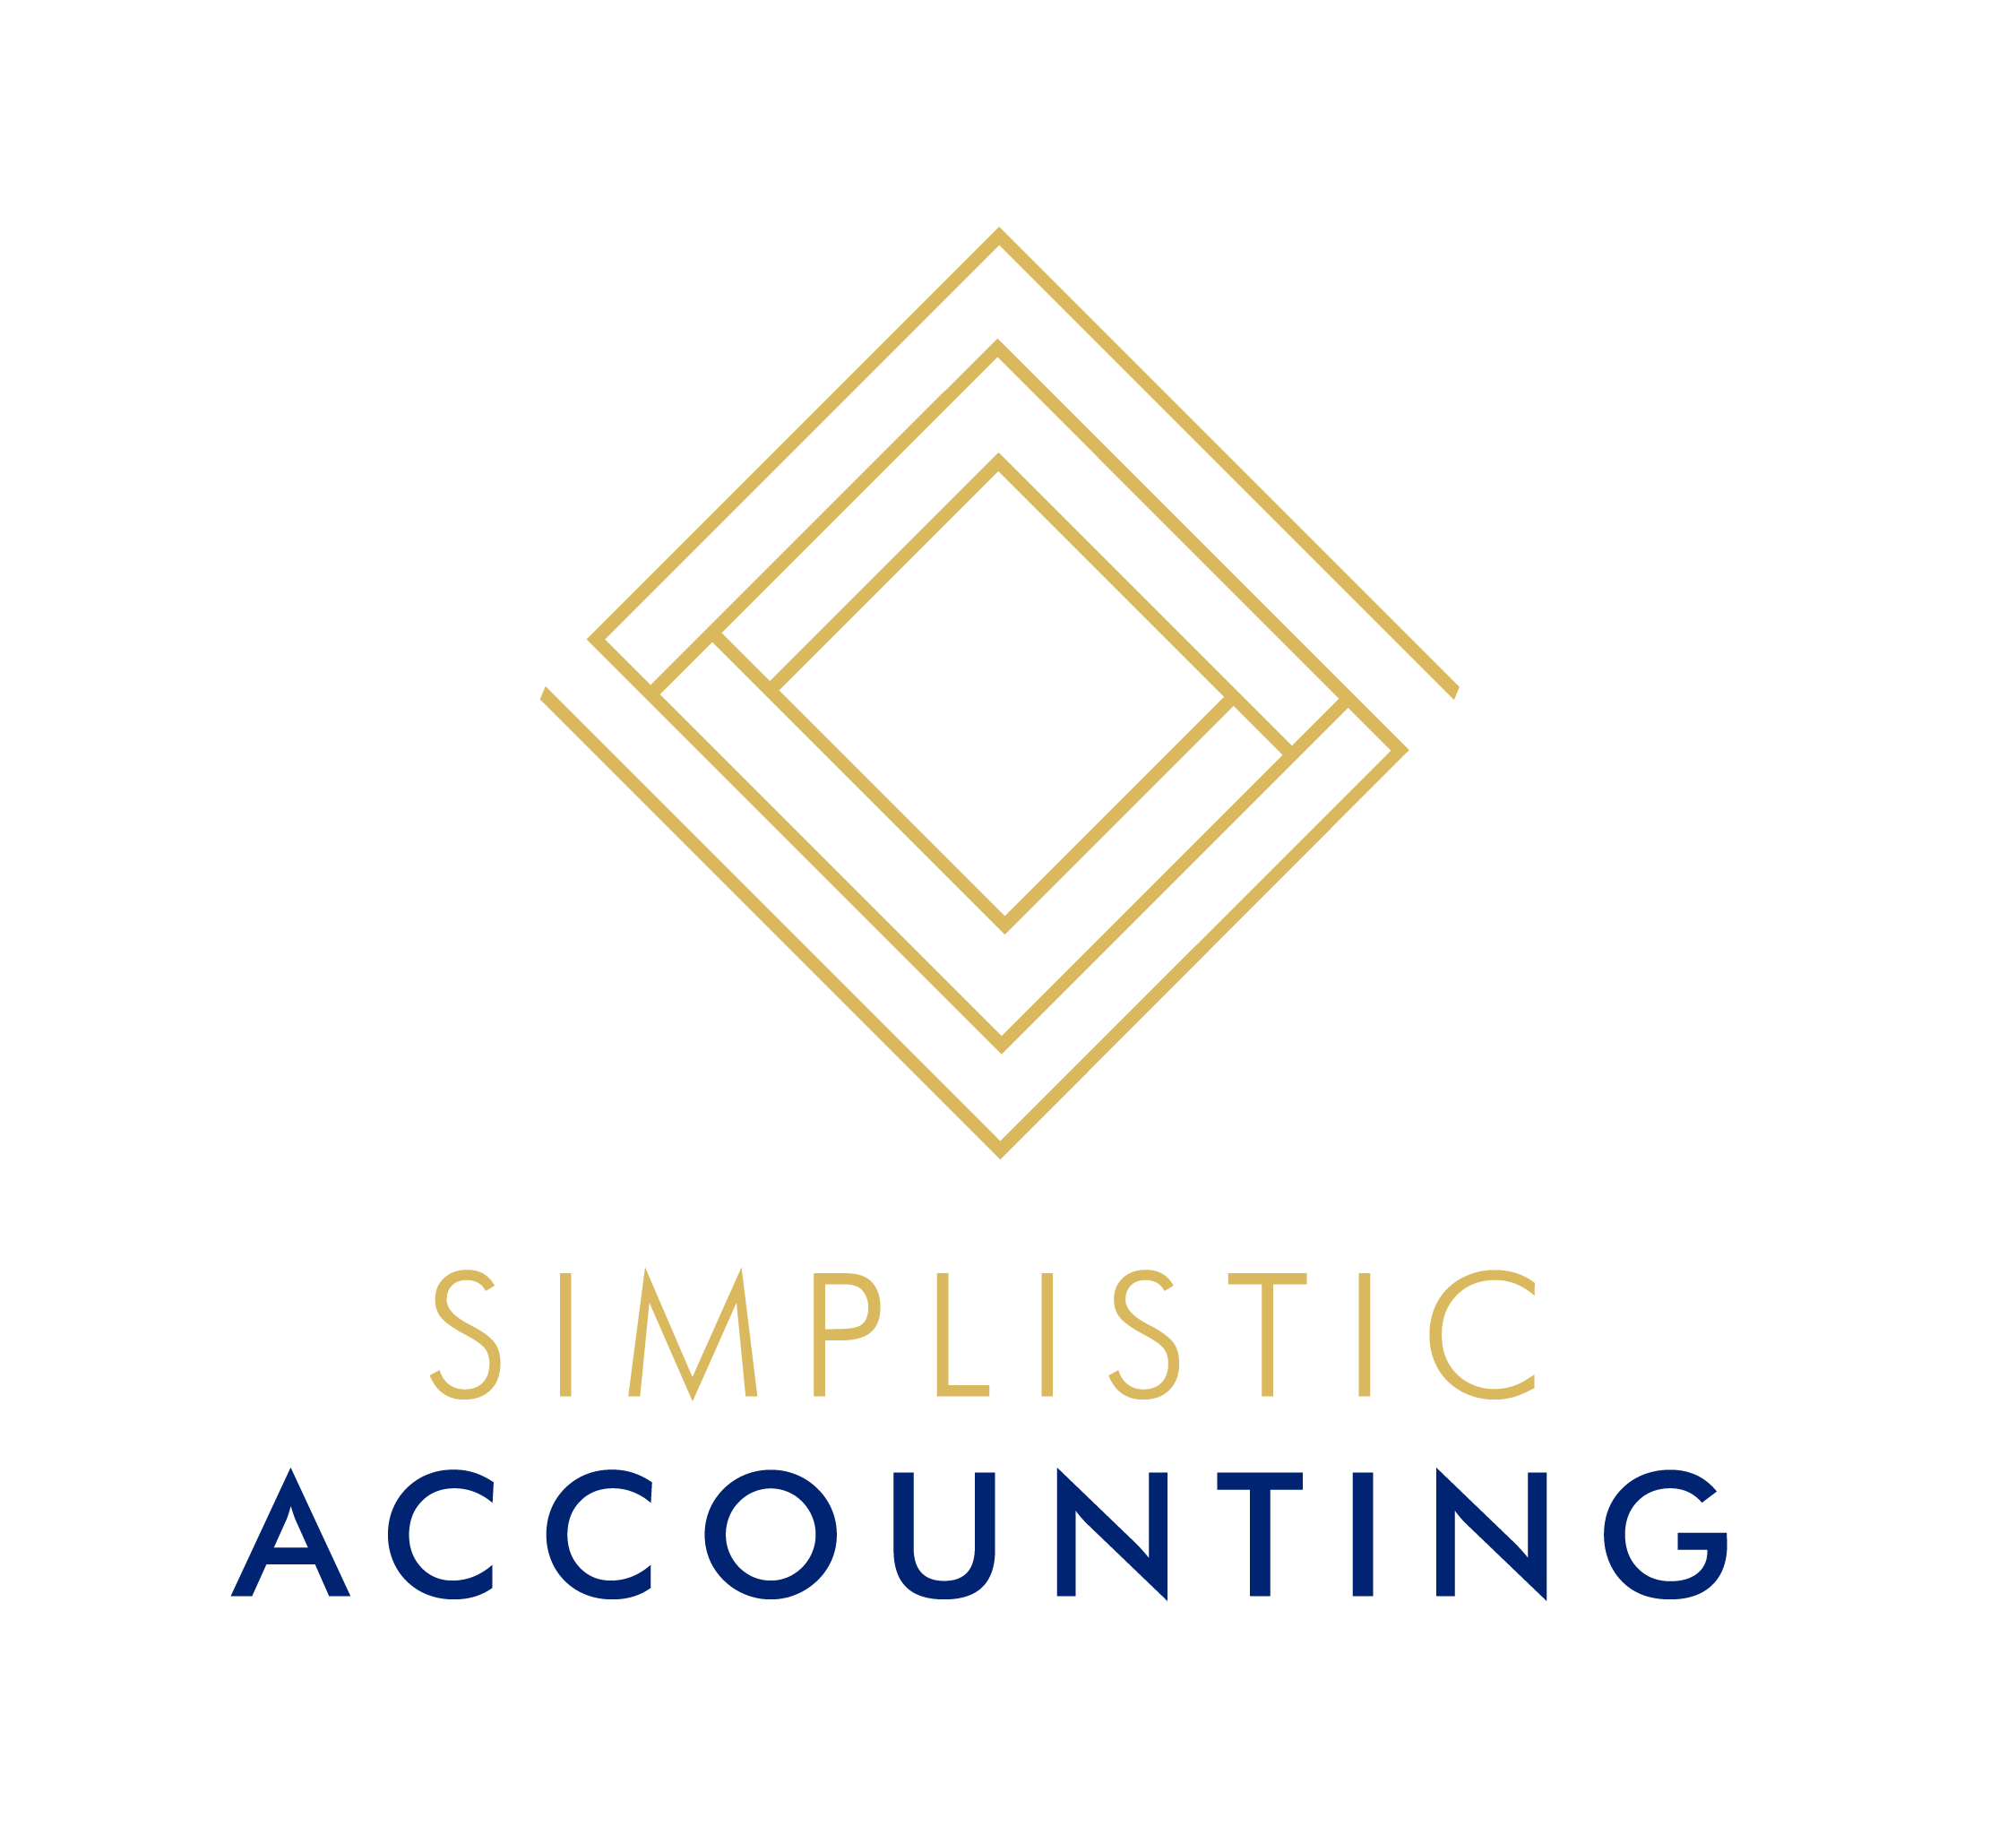 Simplistic Accounting